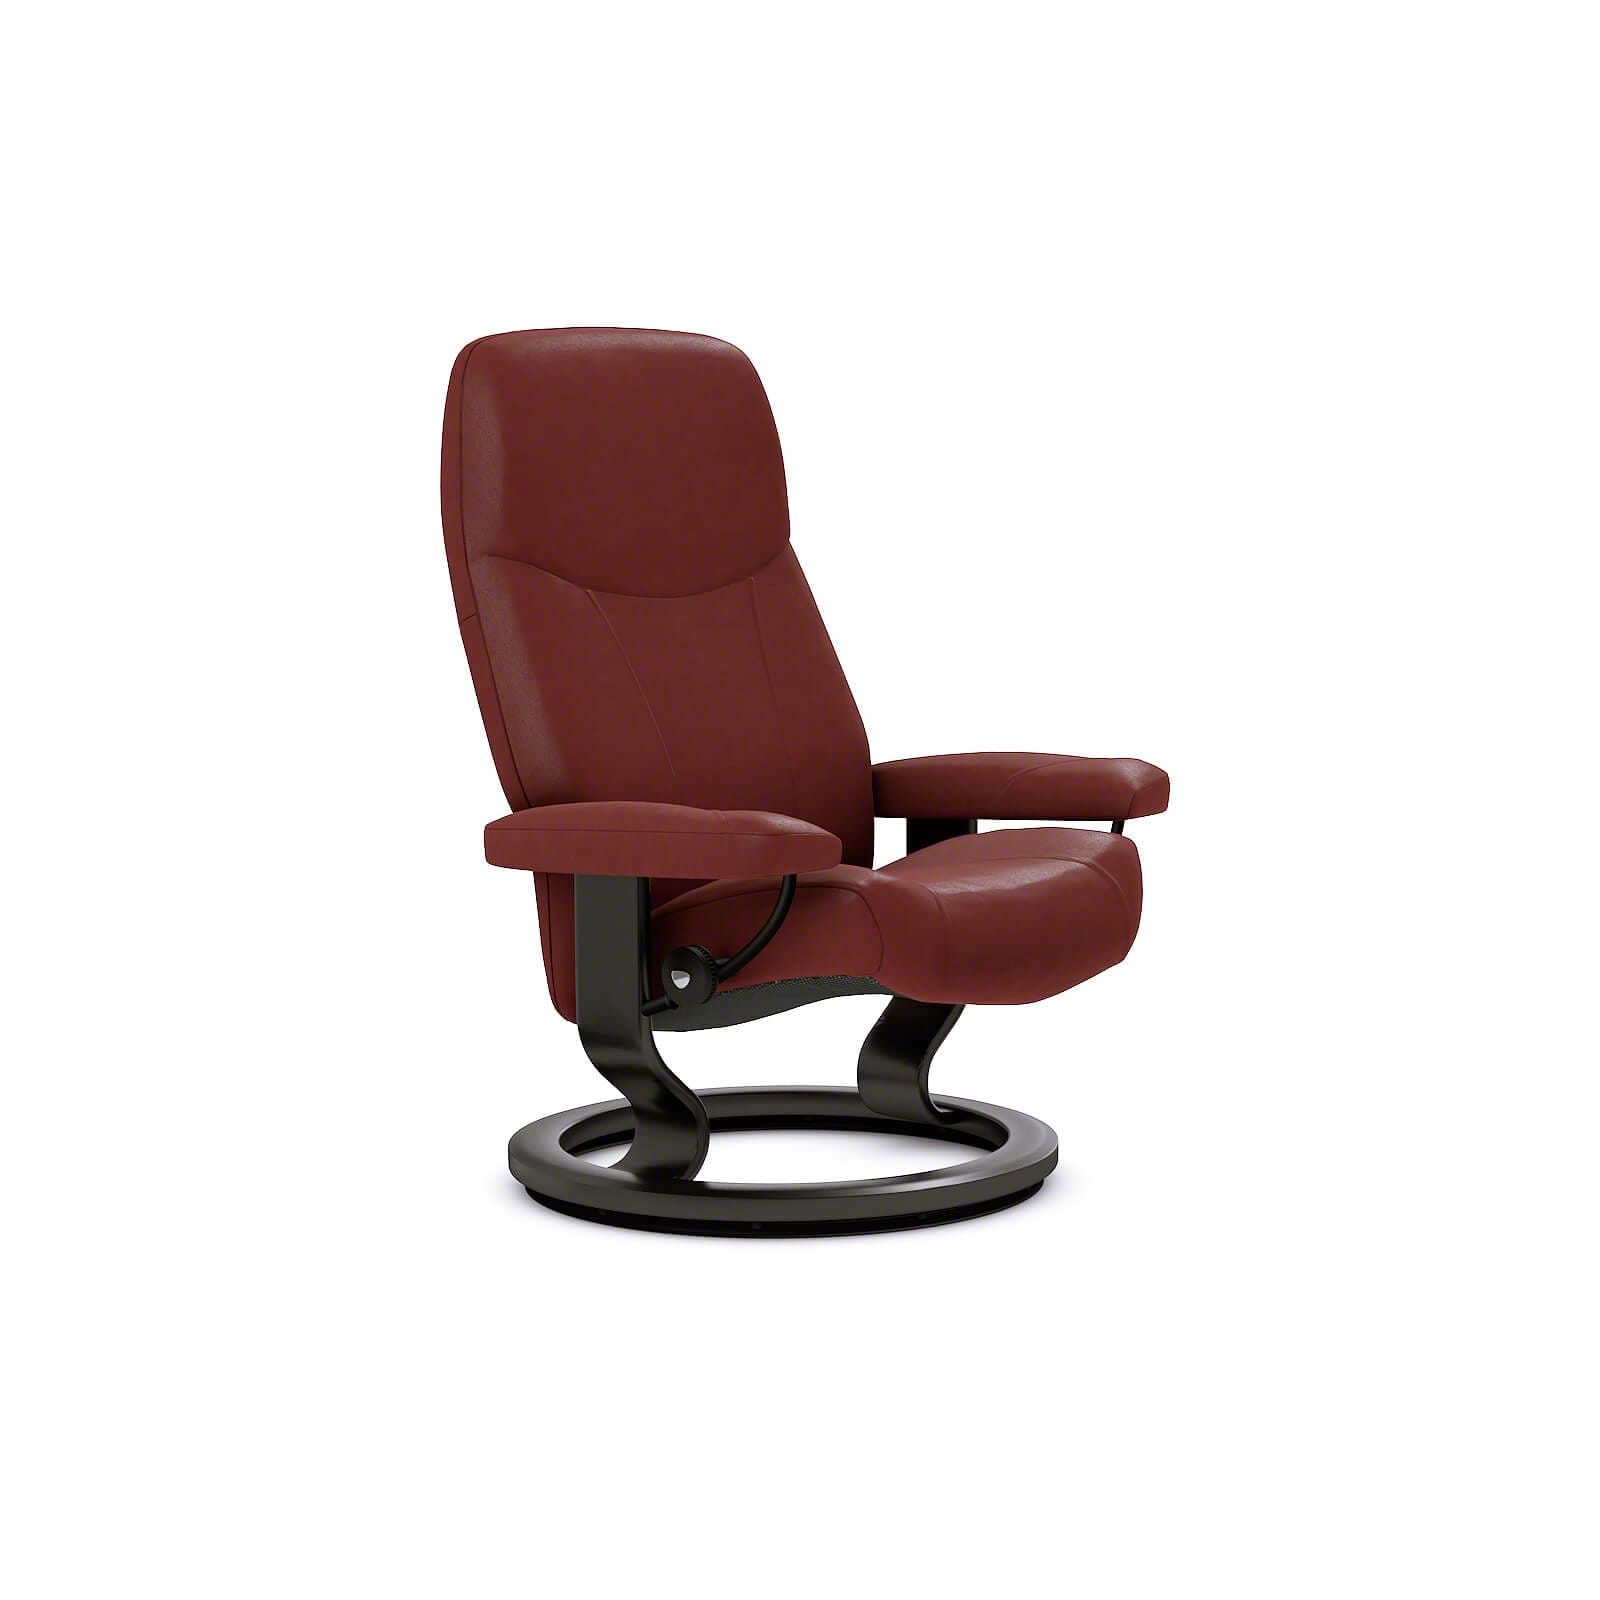 stressless consul sessel batick burgundy ohne hocker stressless. Black Bedroom Furniture Sets. Home Design Ideas